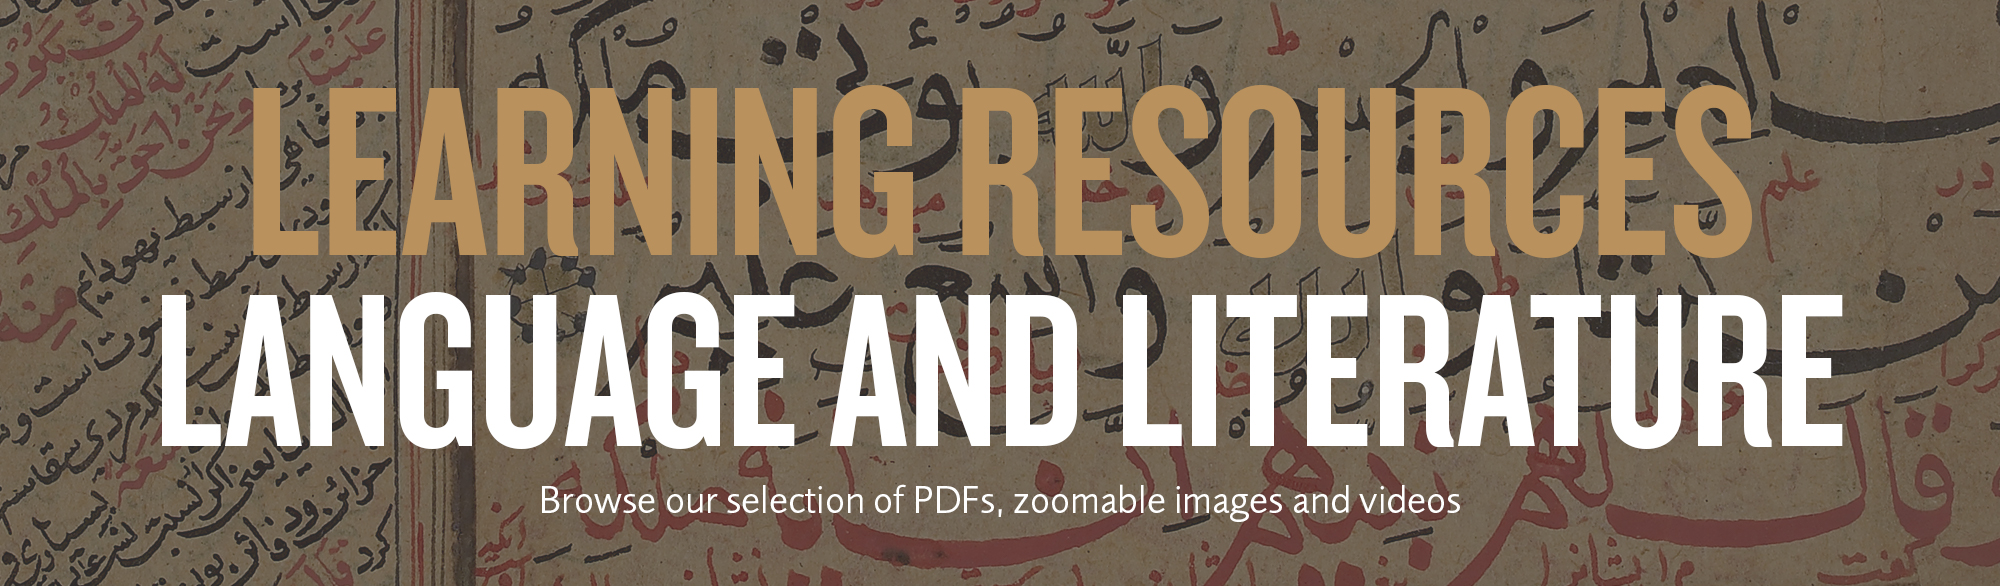 language and literature learning resource